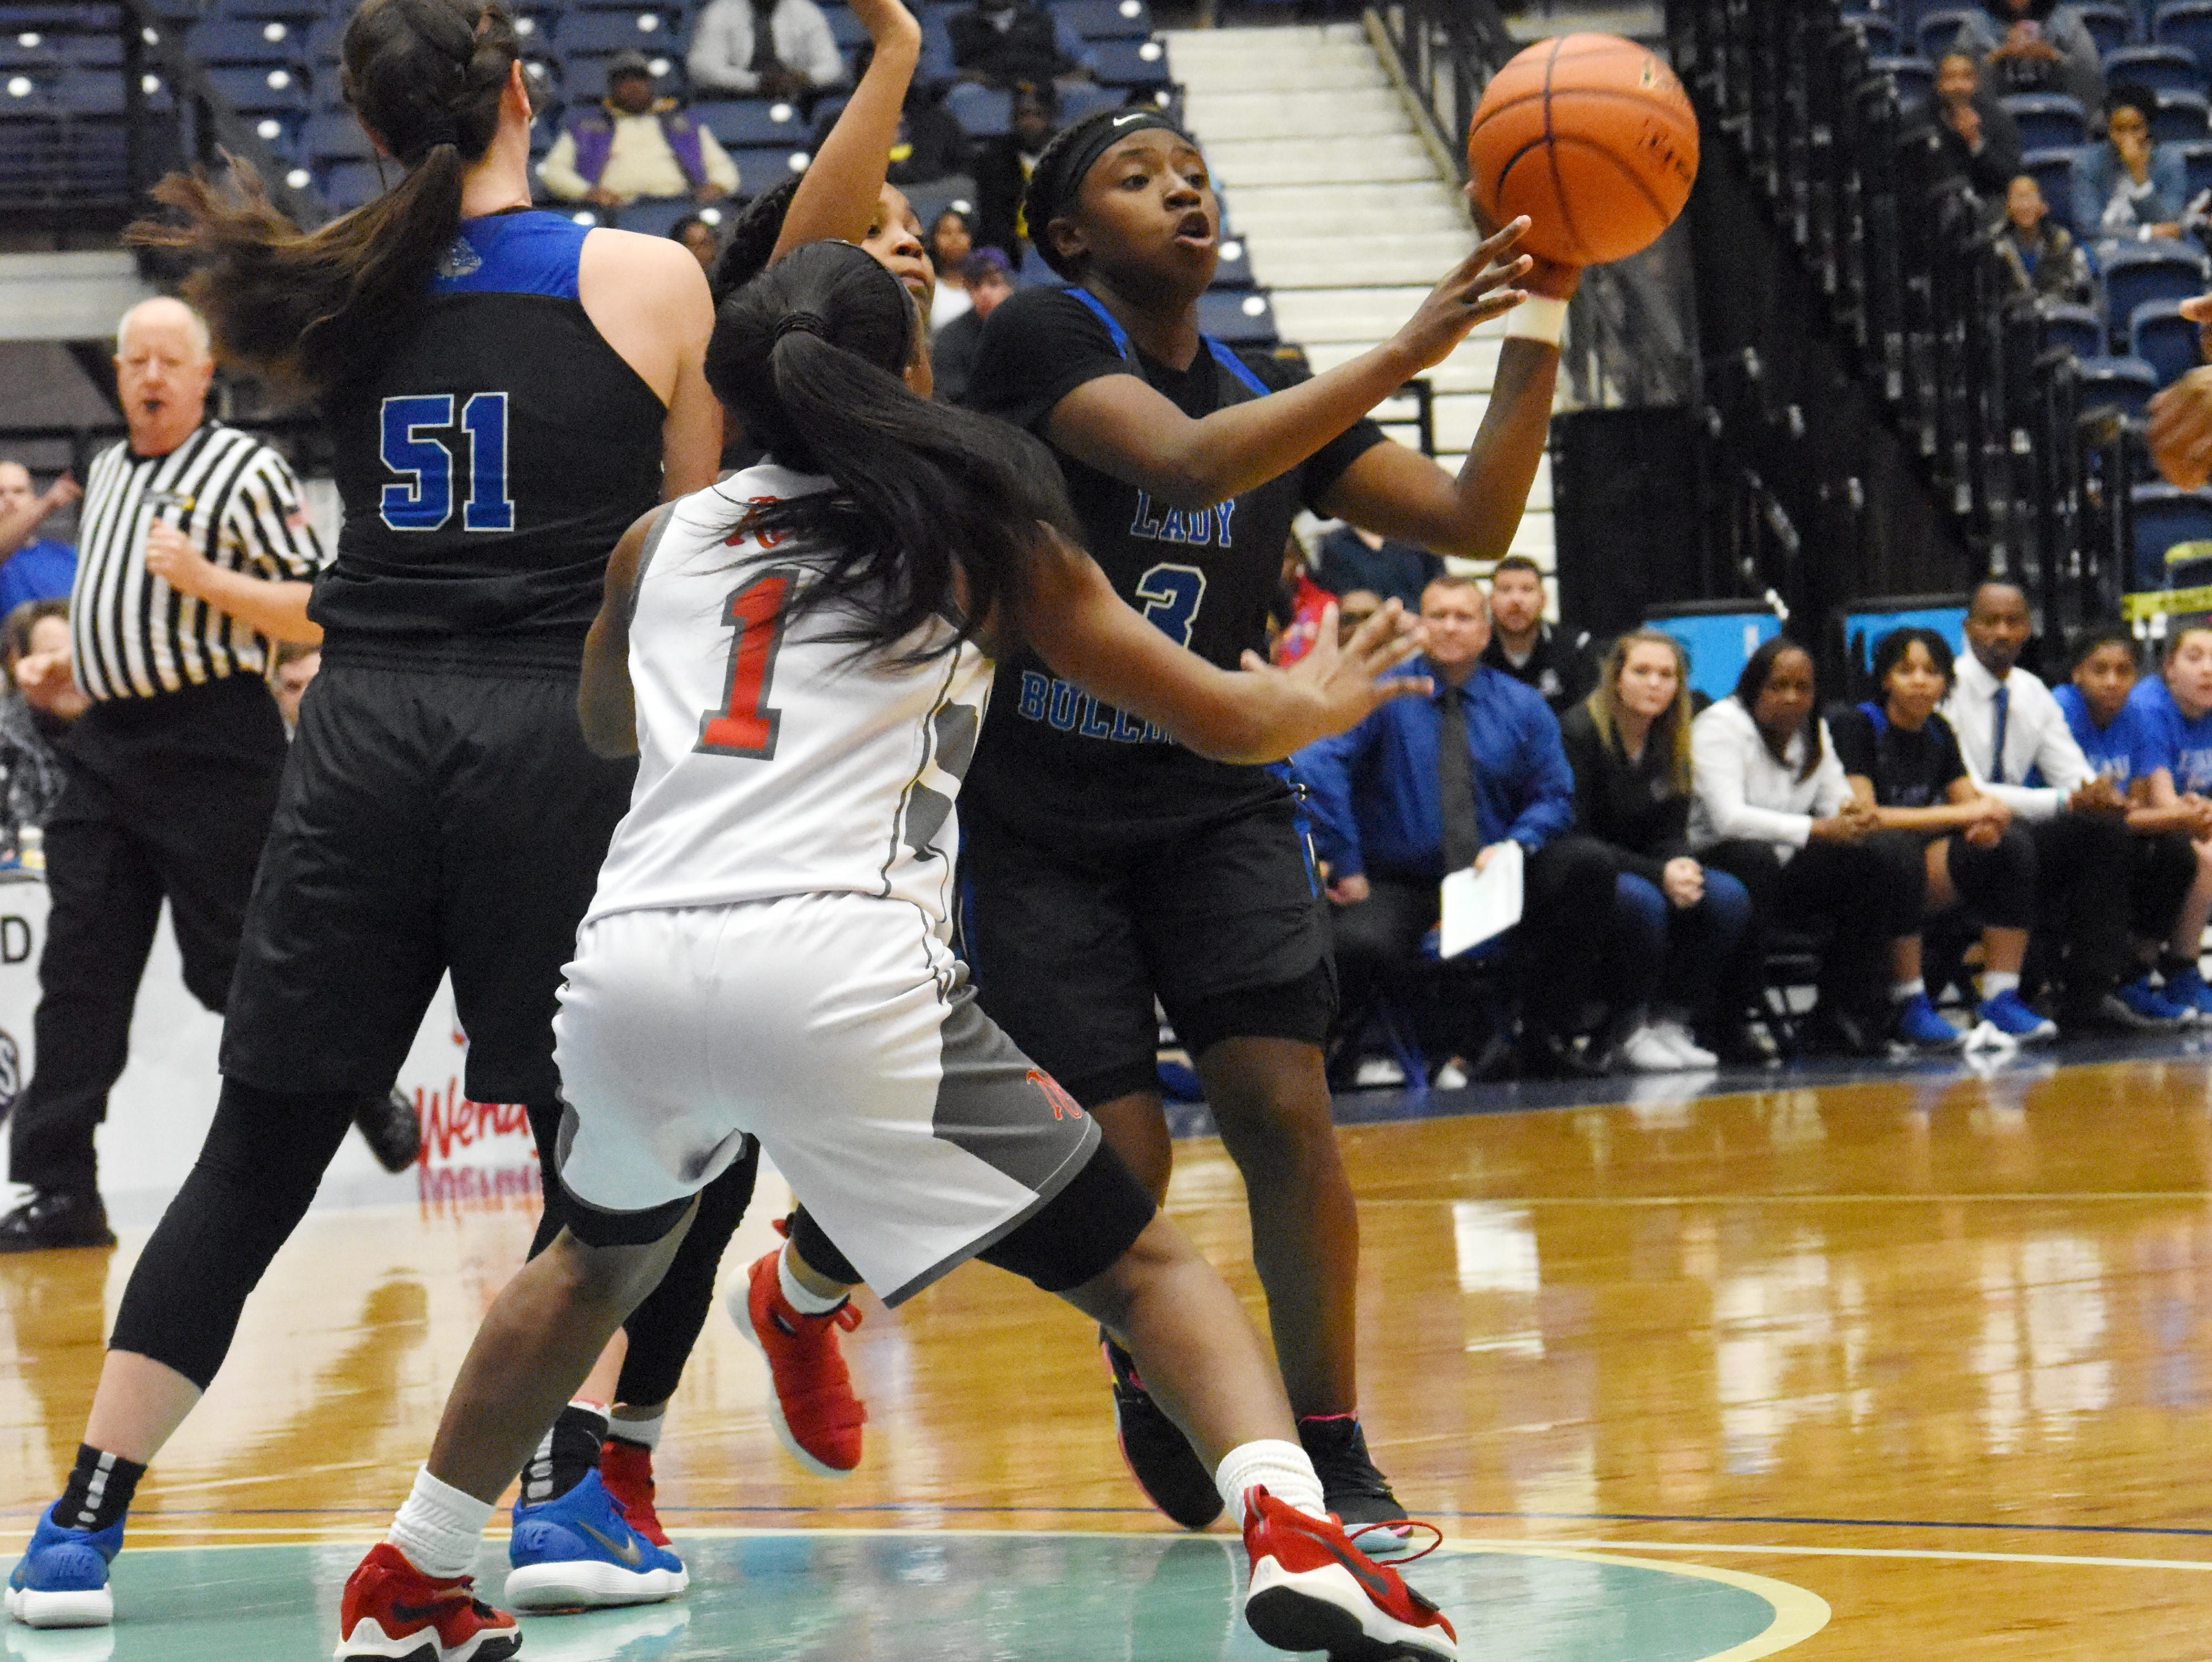 North Caddo Lady defeated Red River 48-47 in the last second of the Class 2A semifinal game of the 2019 Allstate Sugar Bowl 2019 Louisiana High School Athletic Association Girl's State Basketball Marsh Madness held Thursday, Feb. 28, 2019 at the Rapides Parish Coliseum in Alexandria.